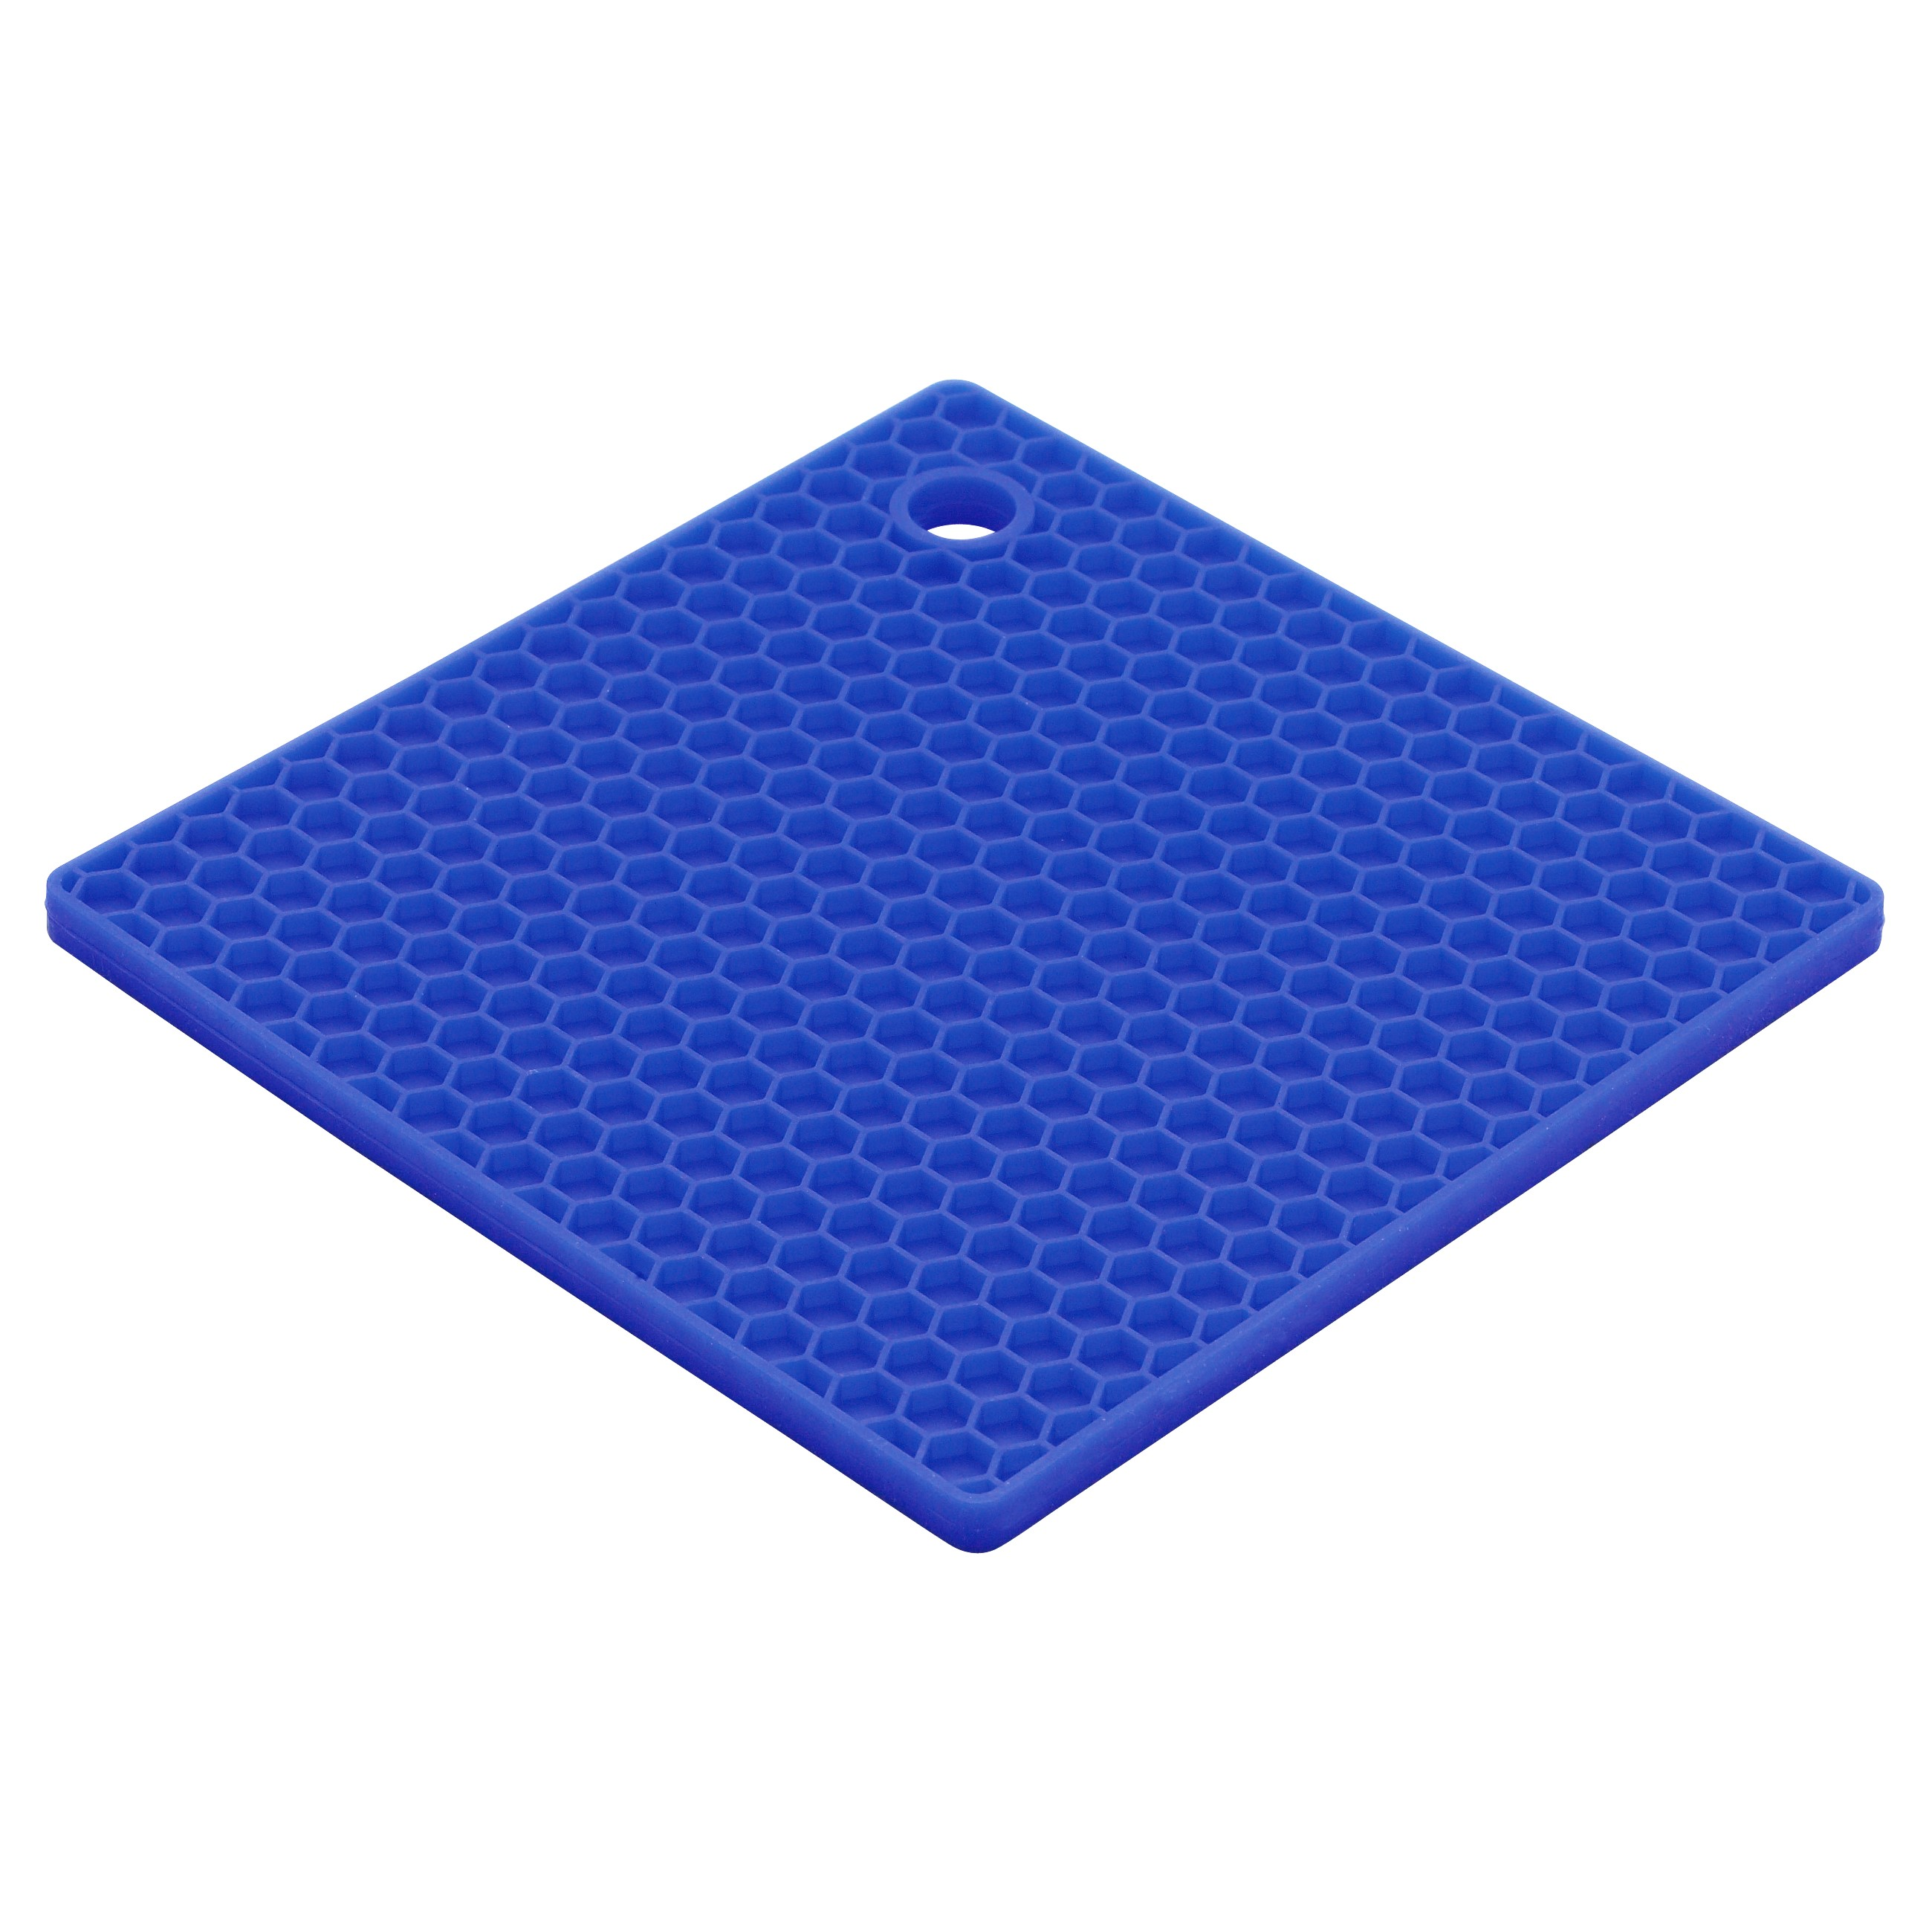 Harold Import Company 7 x 7 In. Honey Comb Trivet, Blueberry